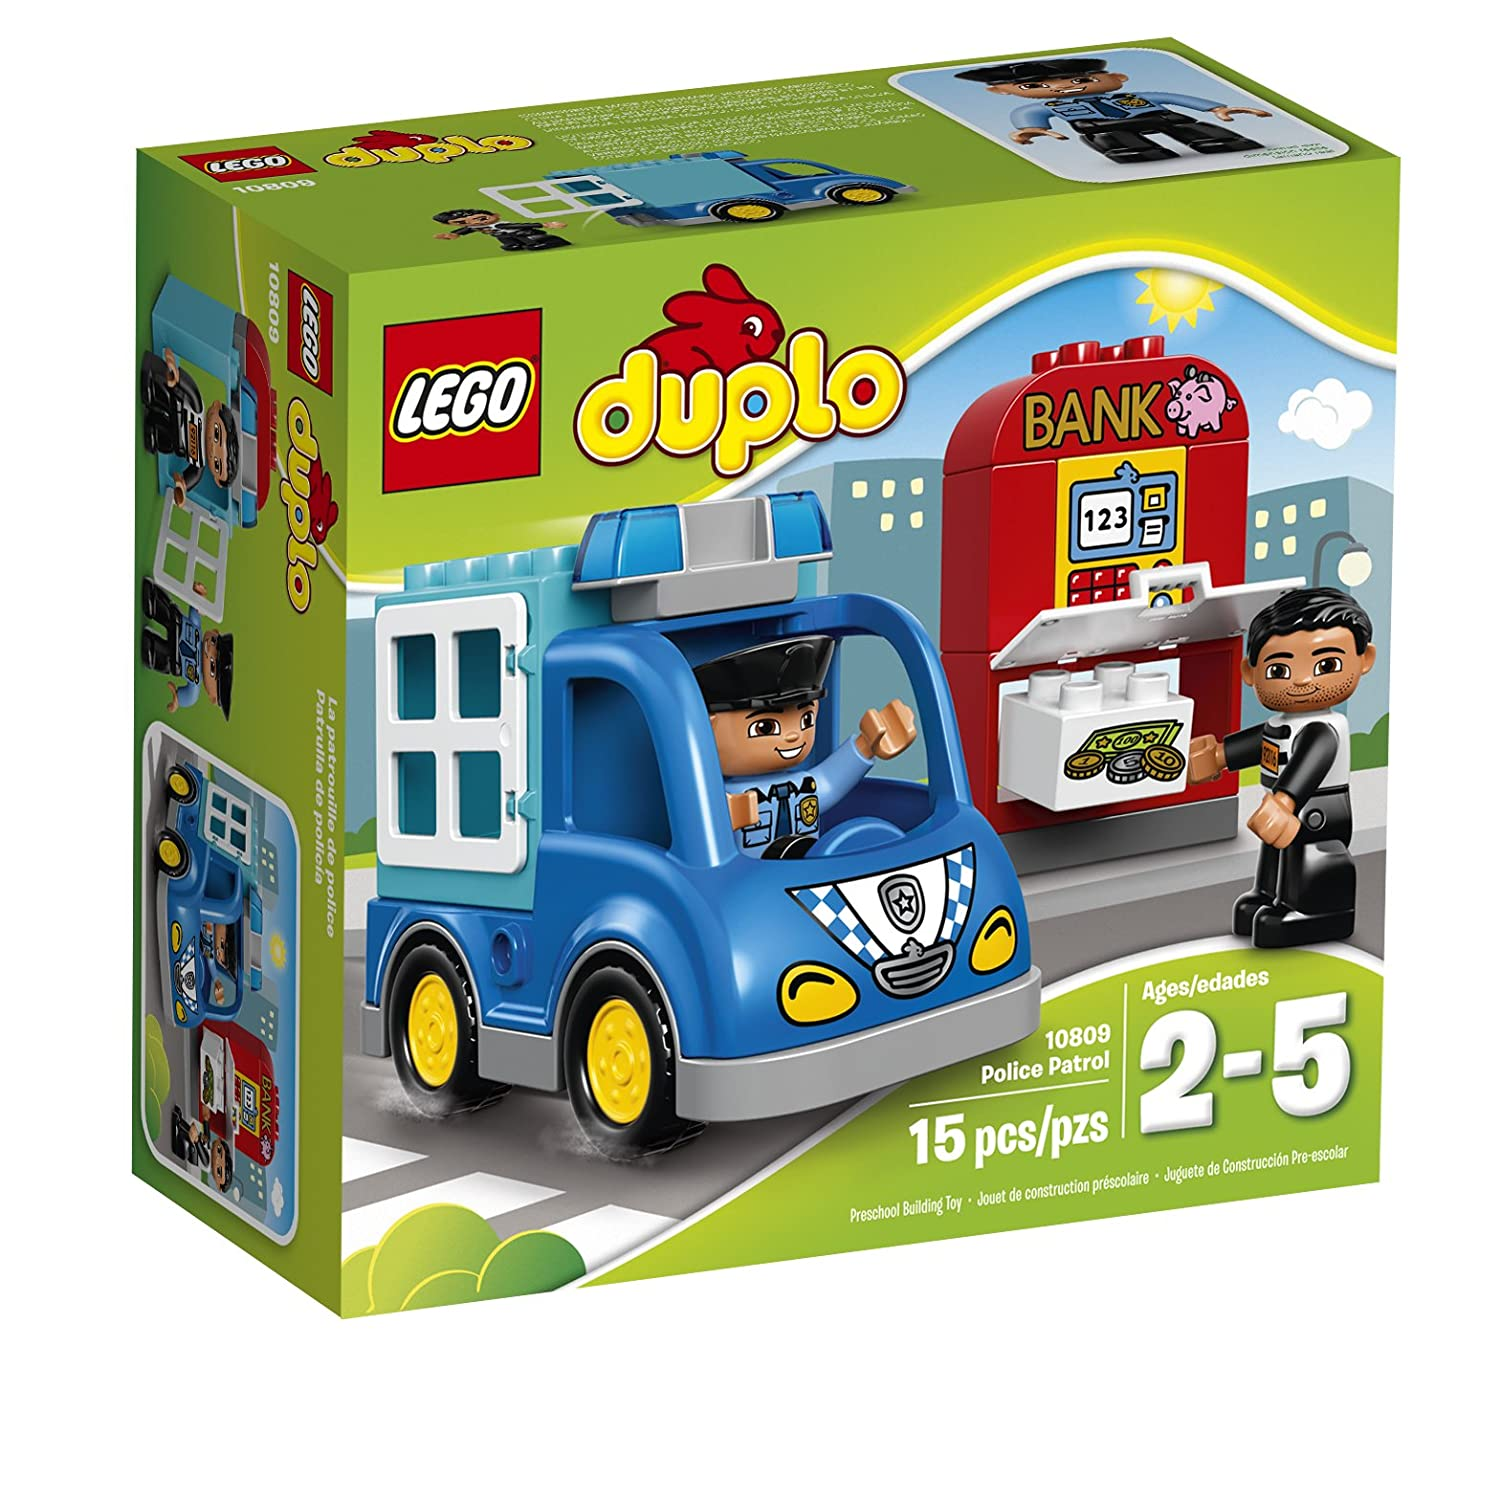 LEGO DUPLO Town Police Patrol 10809 Toddler Toy, Large Building Bricks 6138000